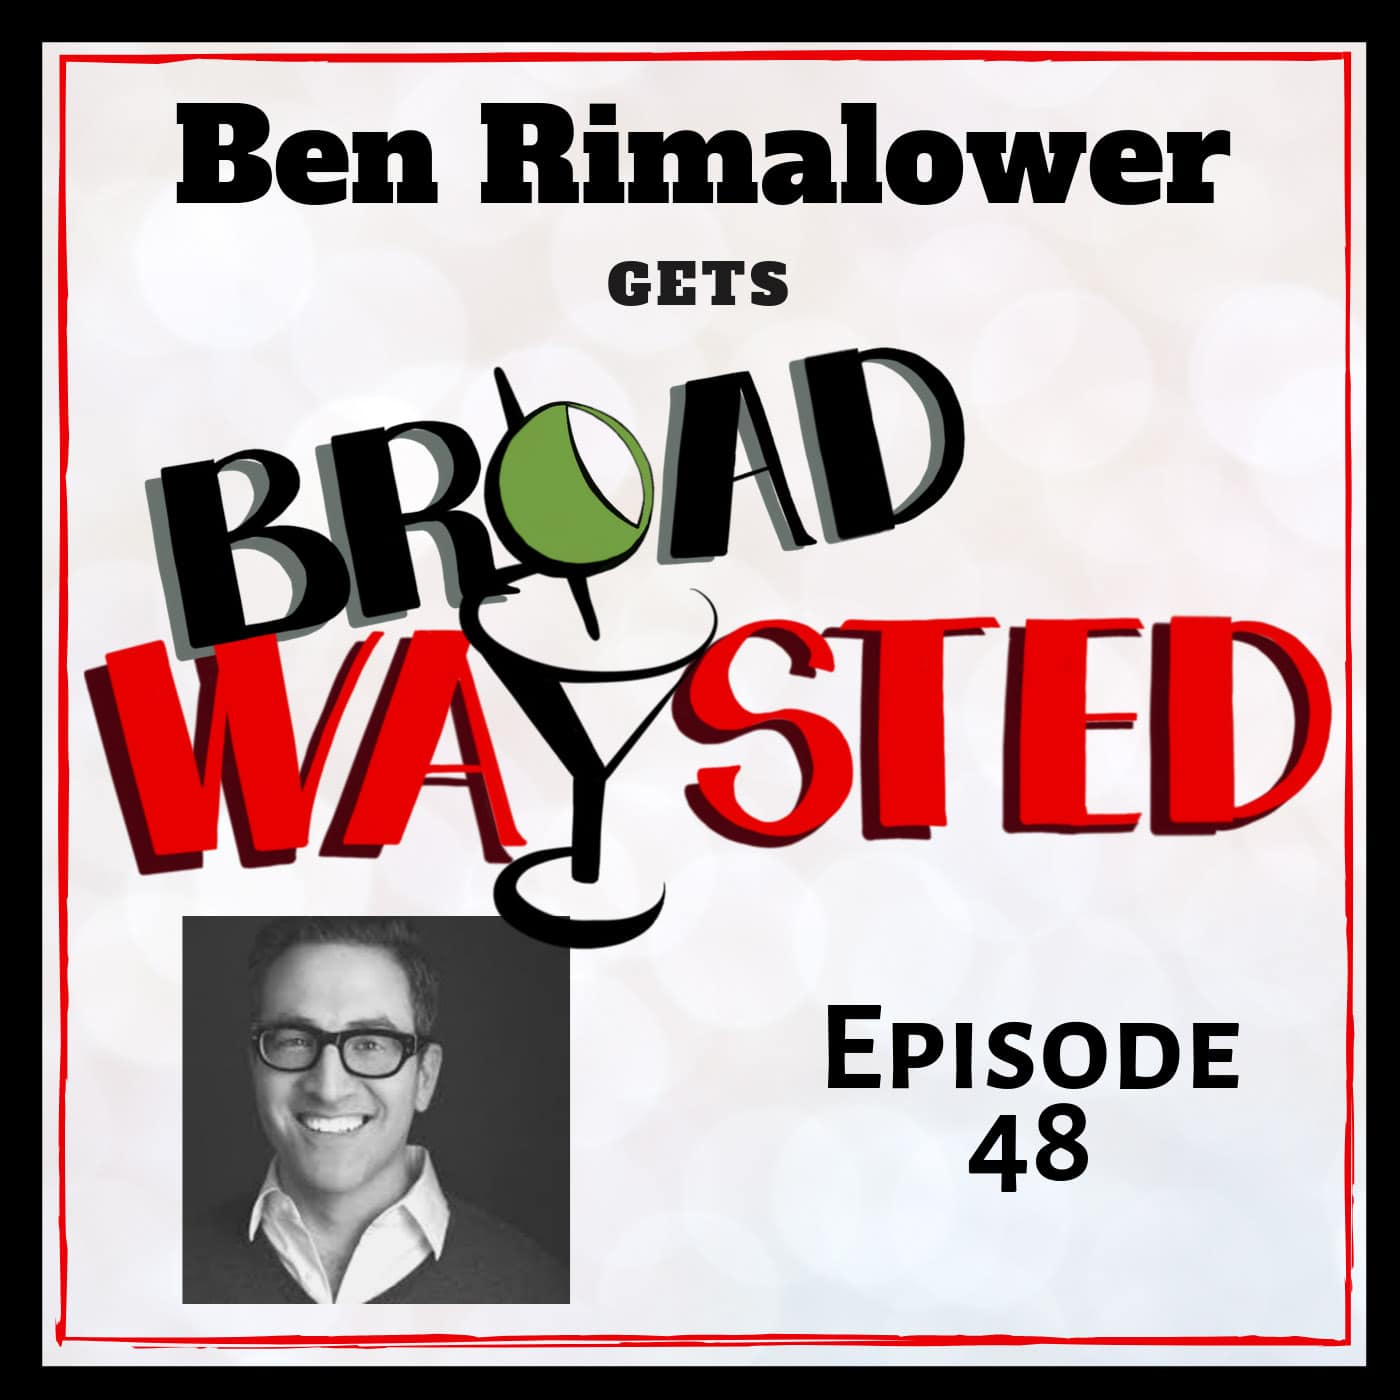 Broadwaysted Ep 48 Ben Rimalower